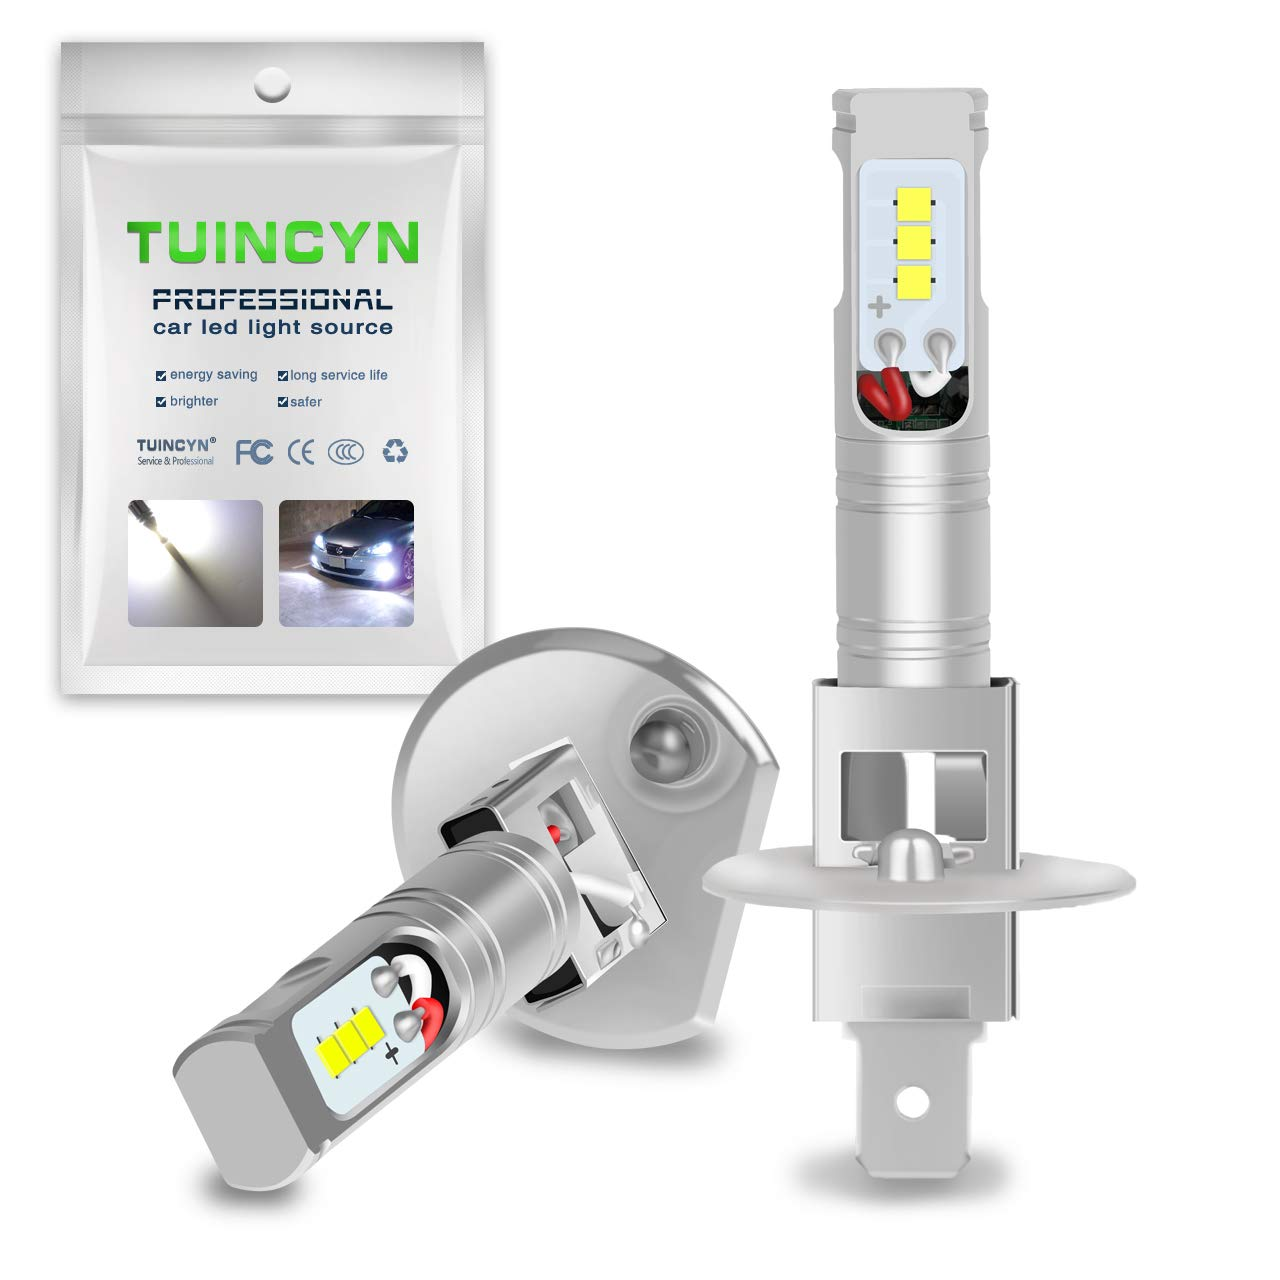 TUINCYN 1600Lm Extremely Bright H1 LED Fog Light Bulbs Replacement 6500K White High Power 80W CSP Chips DRL Daylight LED Bulb DC 12V-24V (2-Pack)